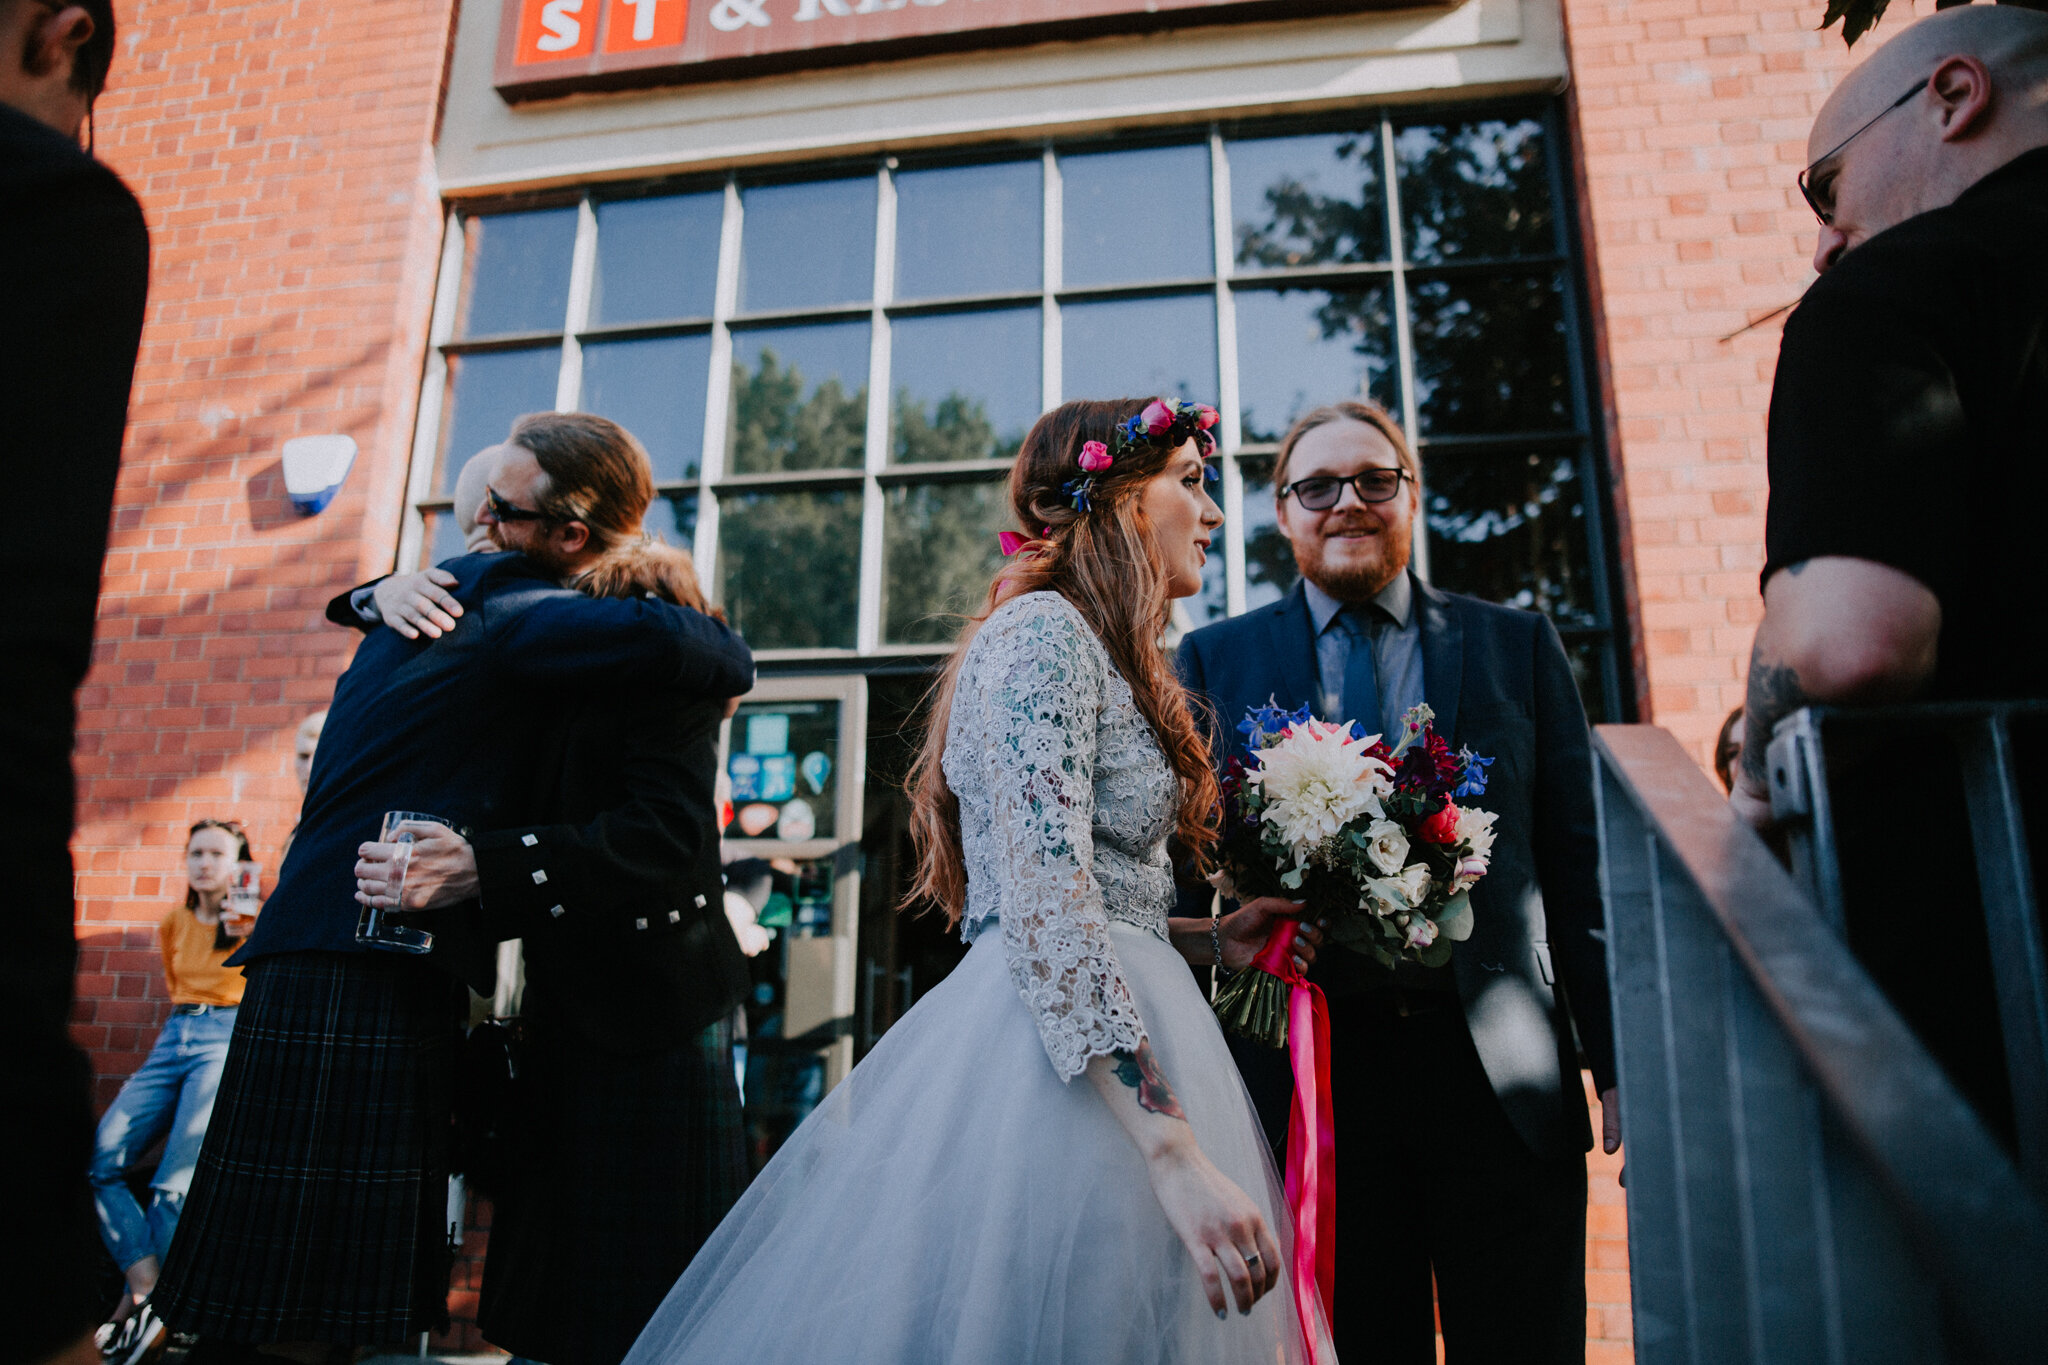 Candid photo of the bride and guests at West on the Green venue